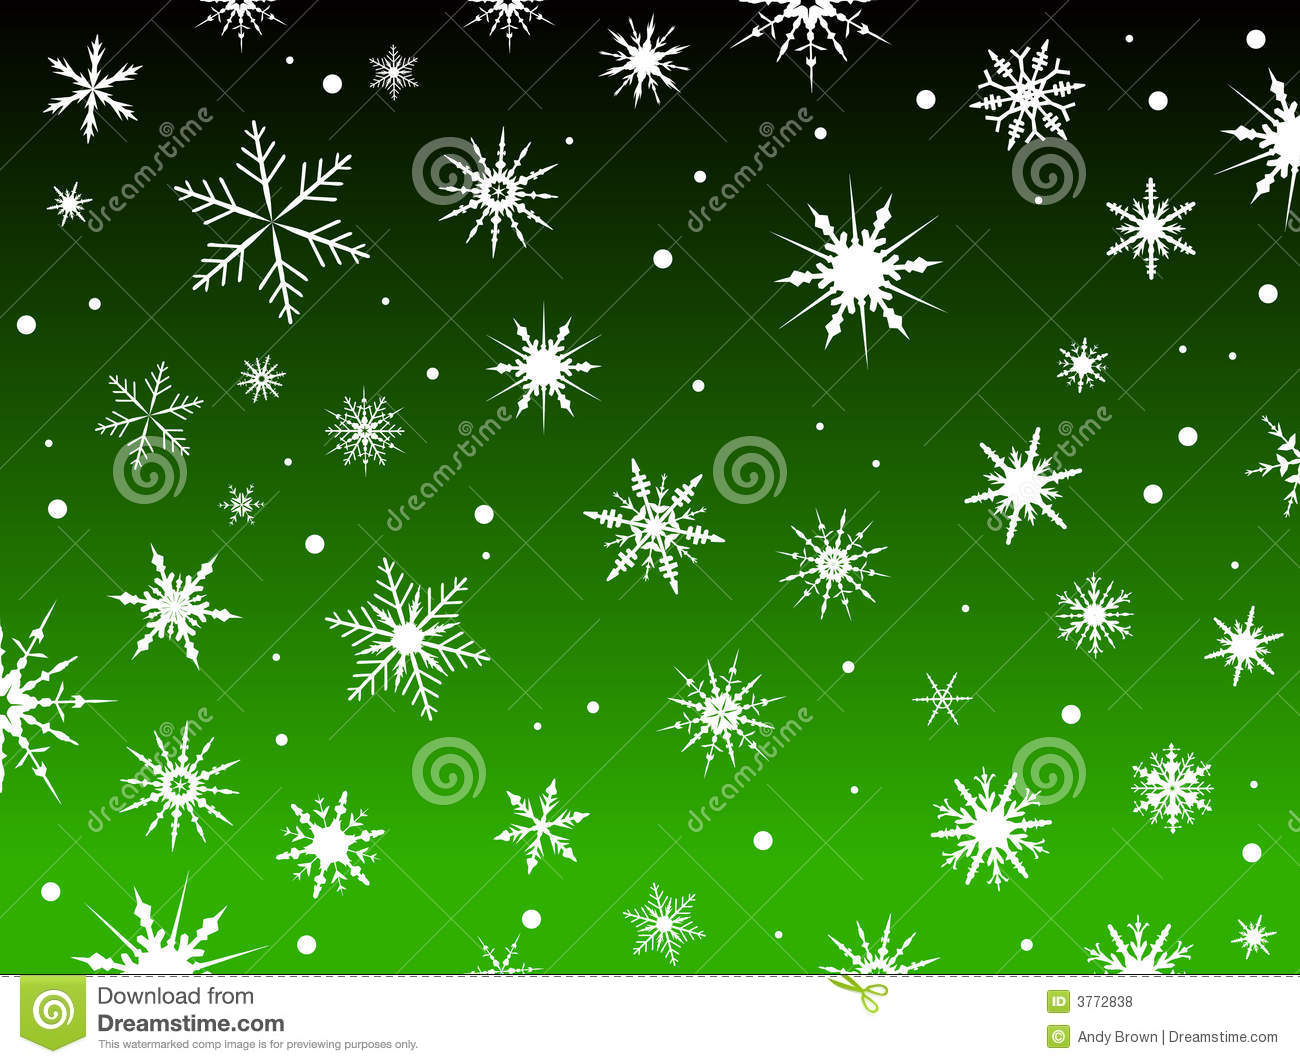 Christmas Snow Falling Wallpaper Snow Border Green Royalty Free Stock Photos Image 3772838